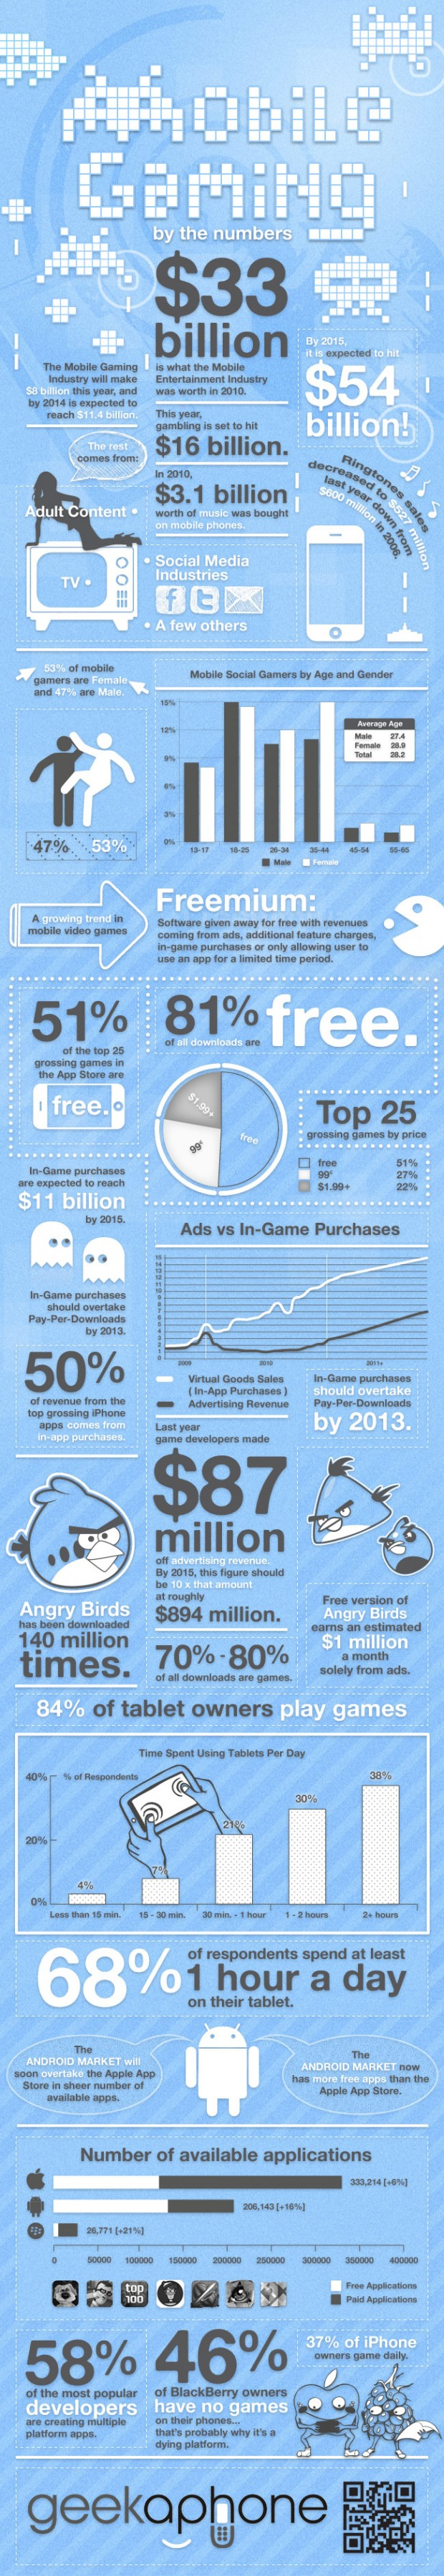 mobiel gamen infographic Infographic over mobiel gamen